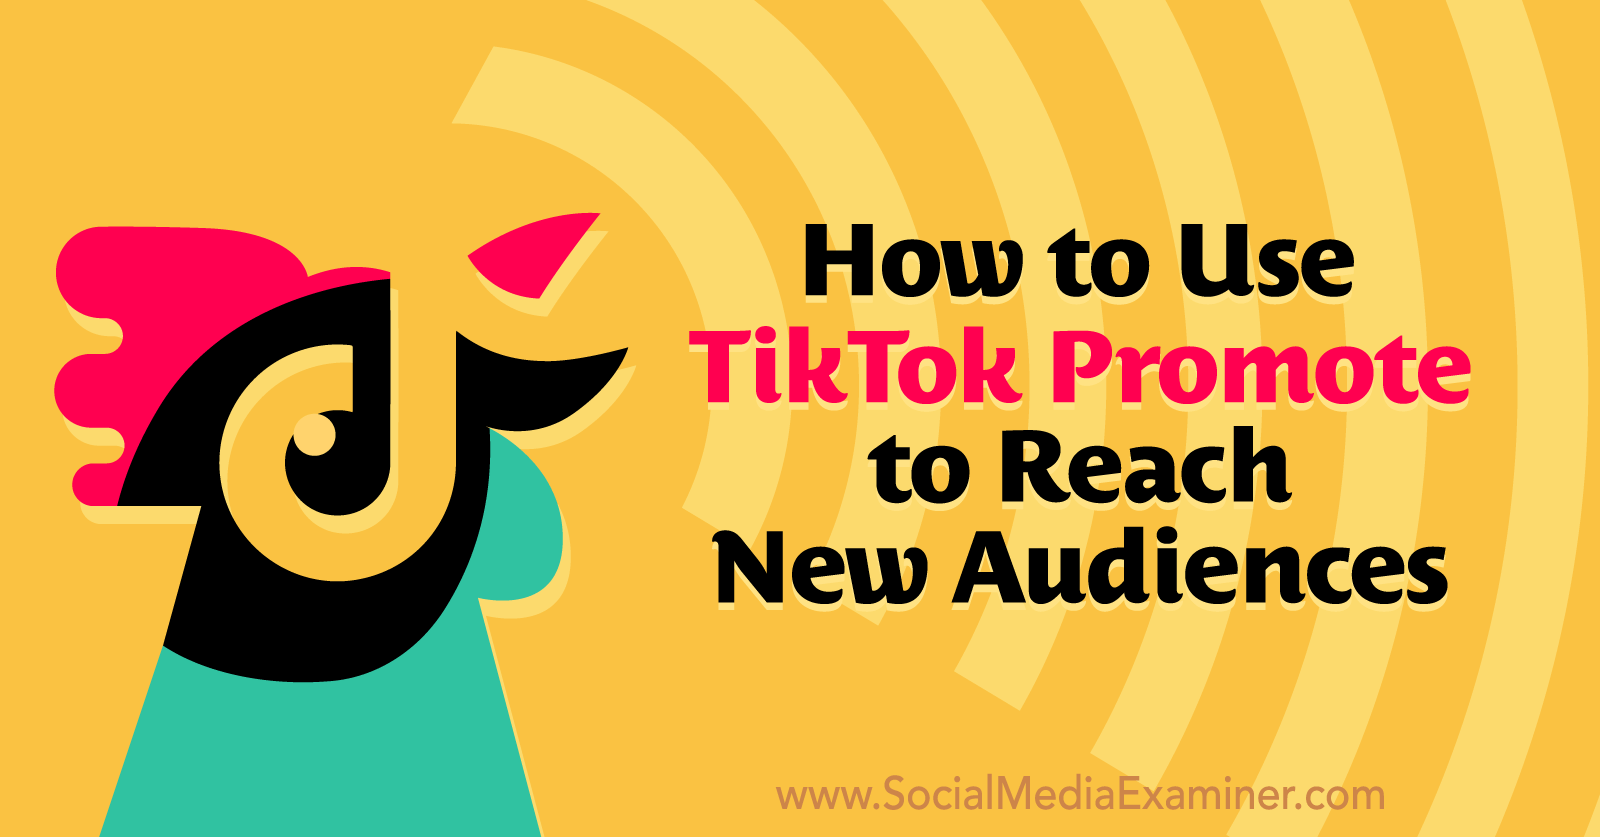 How to Use TikTok Promote to Reach New Audiences on Social Media Examiner.